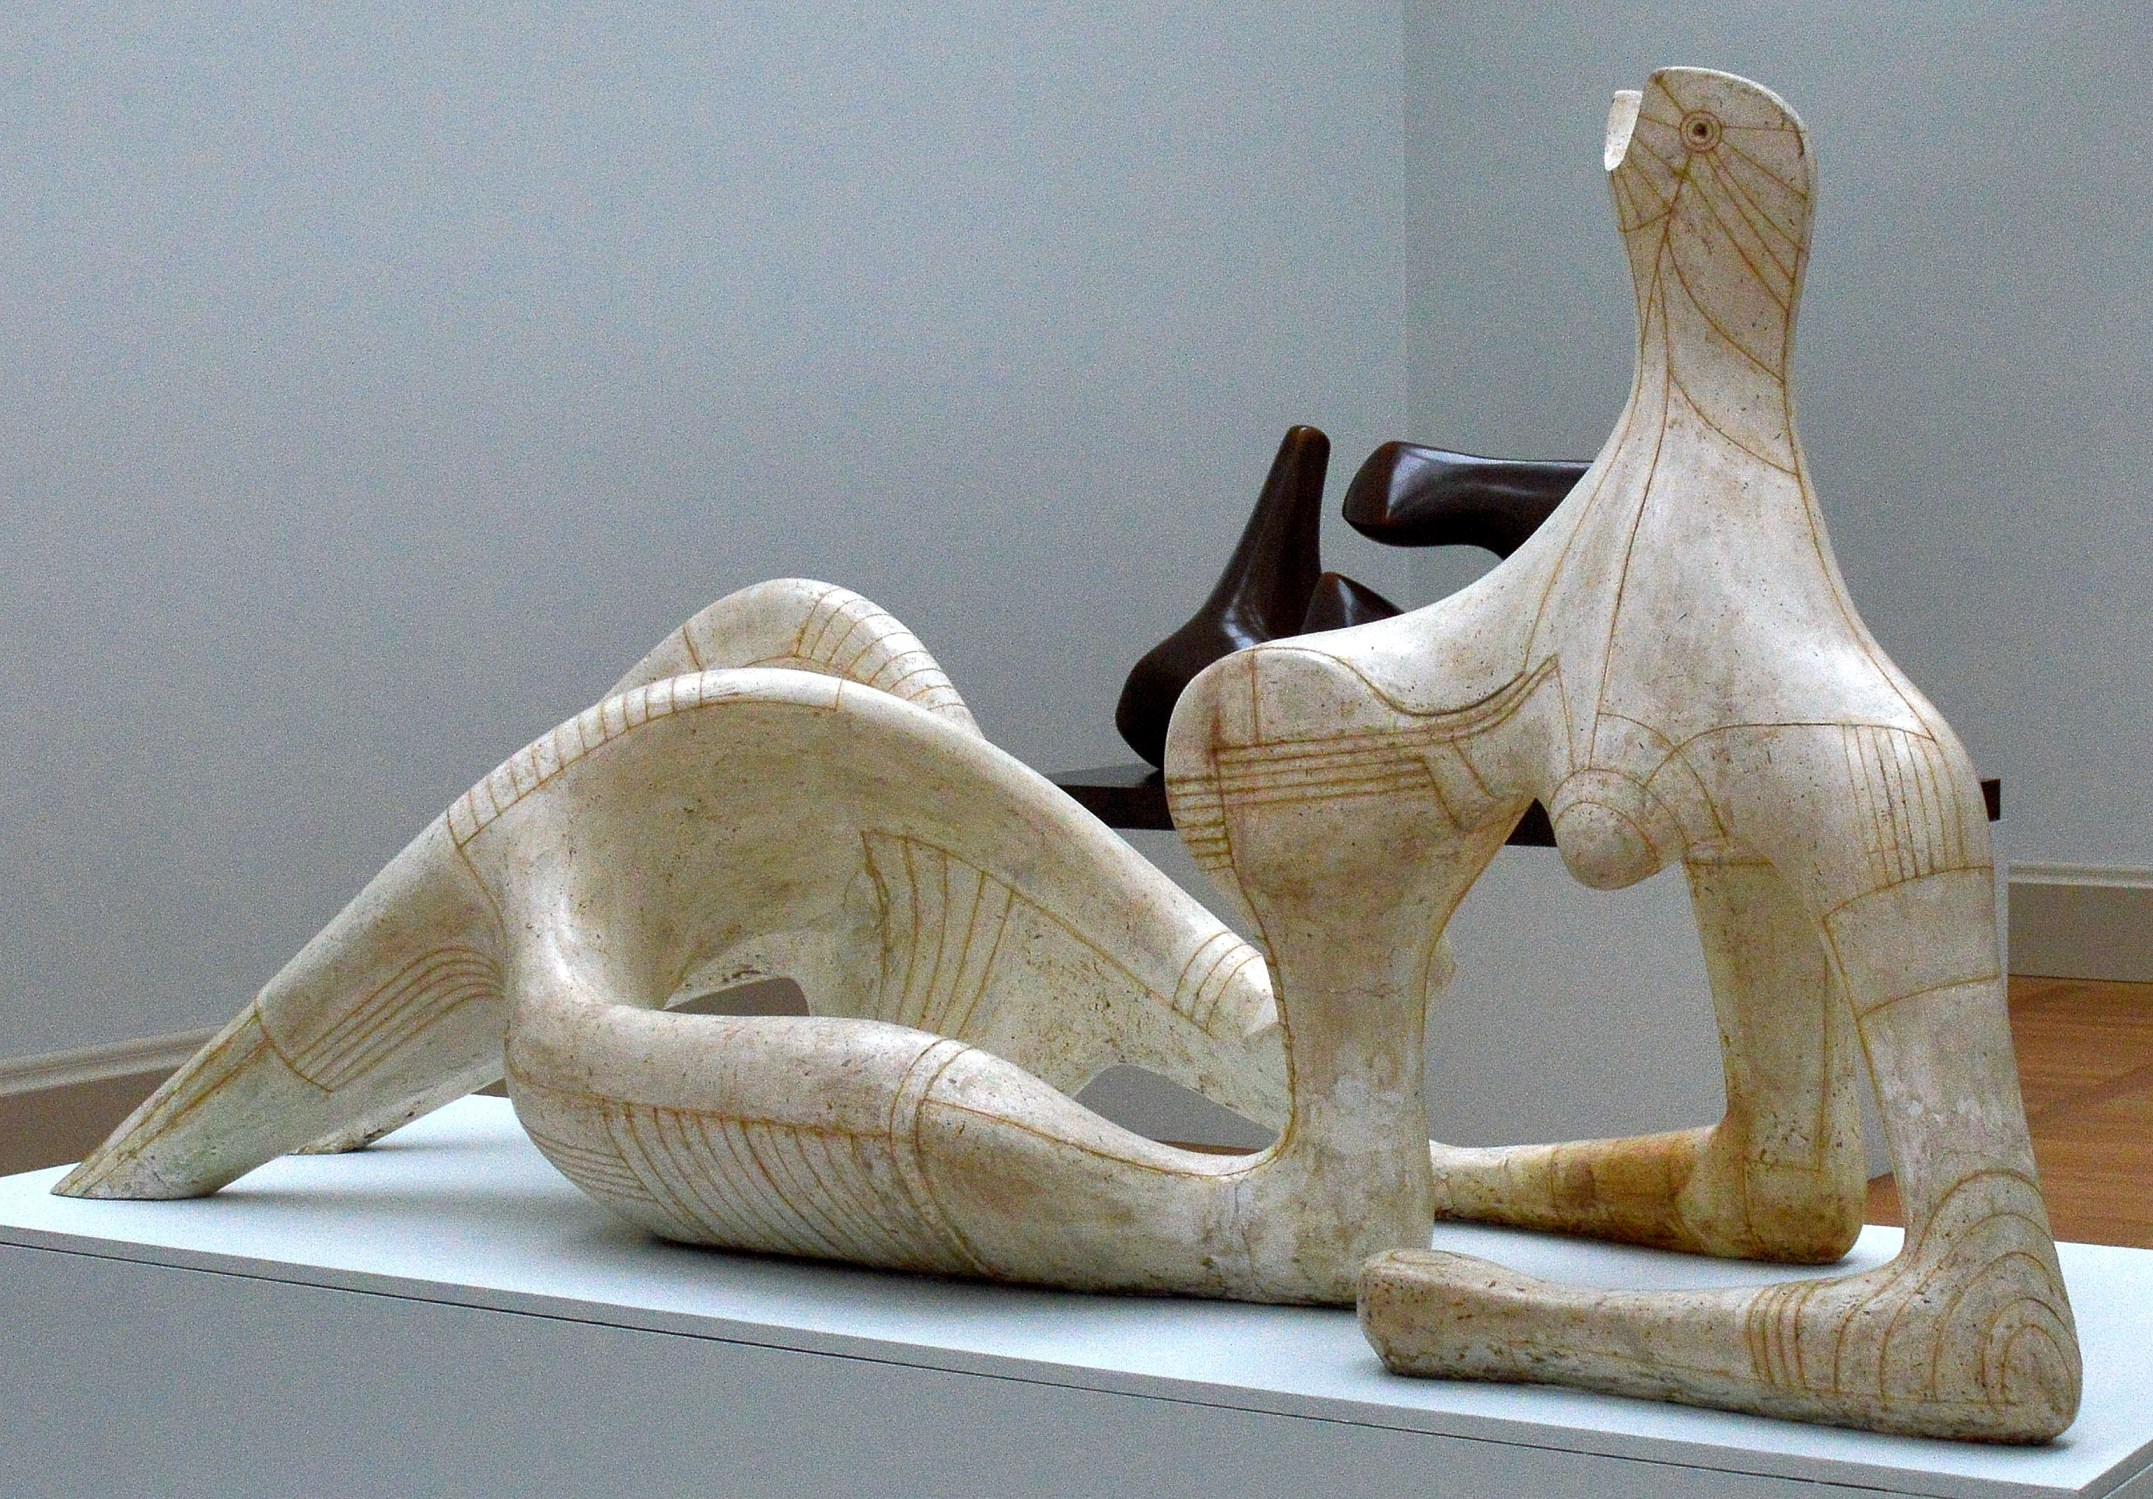 The tate britain art gallery picture this uk for Art moderne sculpture